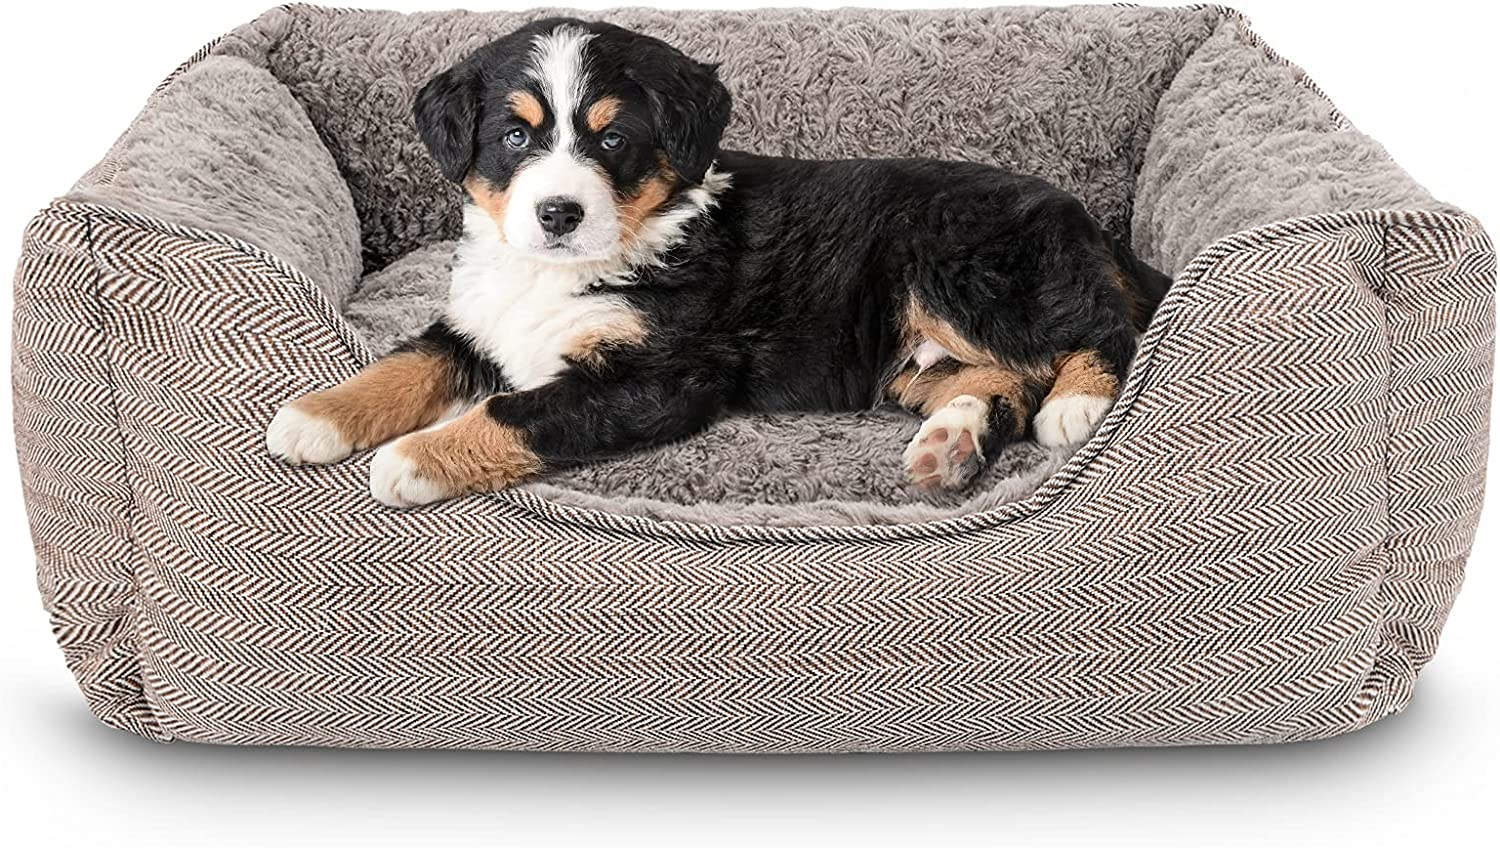 """INVENHO Rectangle Dog Bed for Medium Large Dogs Machine Removable Washable Sleeping Dog Sofa Bed Non-Slip Bottom Breathable Thickened Durable Pet Bed Calming Puppy Cuddler 24""""x 21""""x 8.5"""